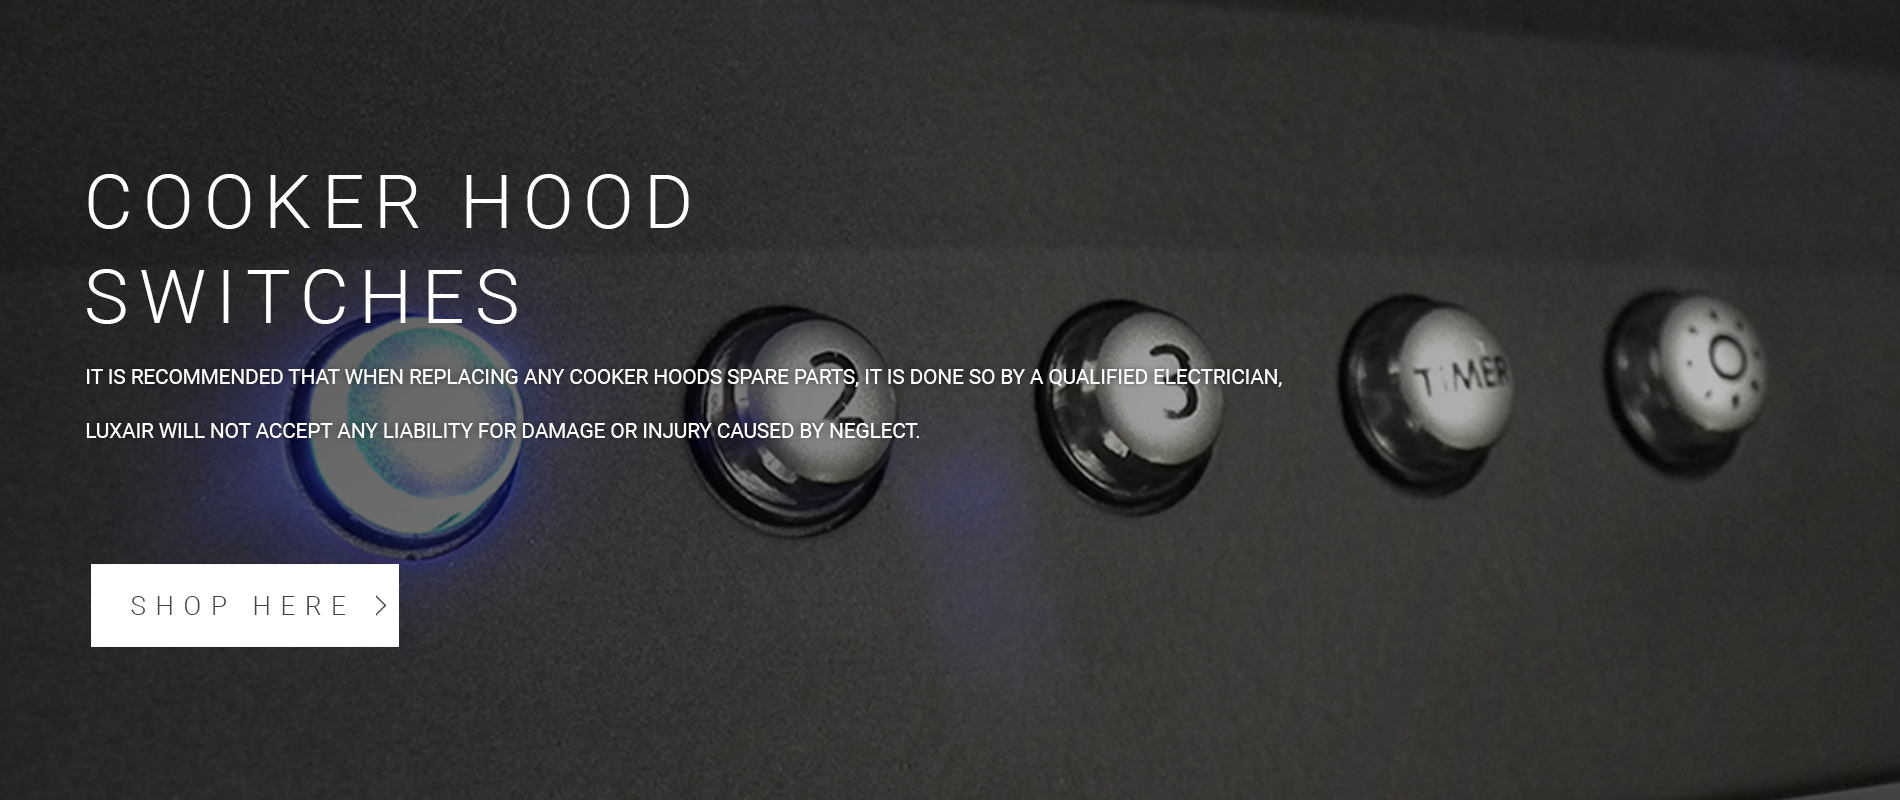 Cooker Hood Switches